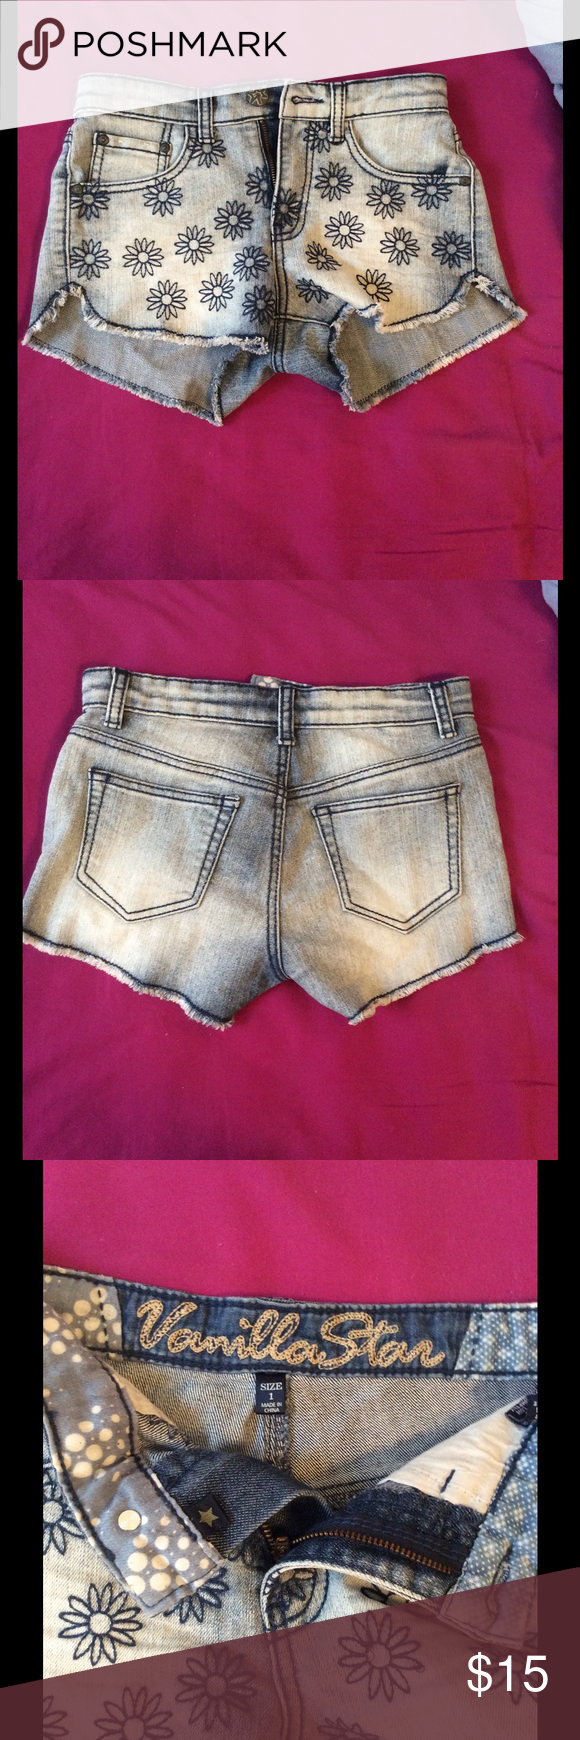 Flower shorts Blue faded jean shorts with a floral design on the front. Super cute only worn once. Vanilla Star Shorts Jean Shorts